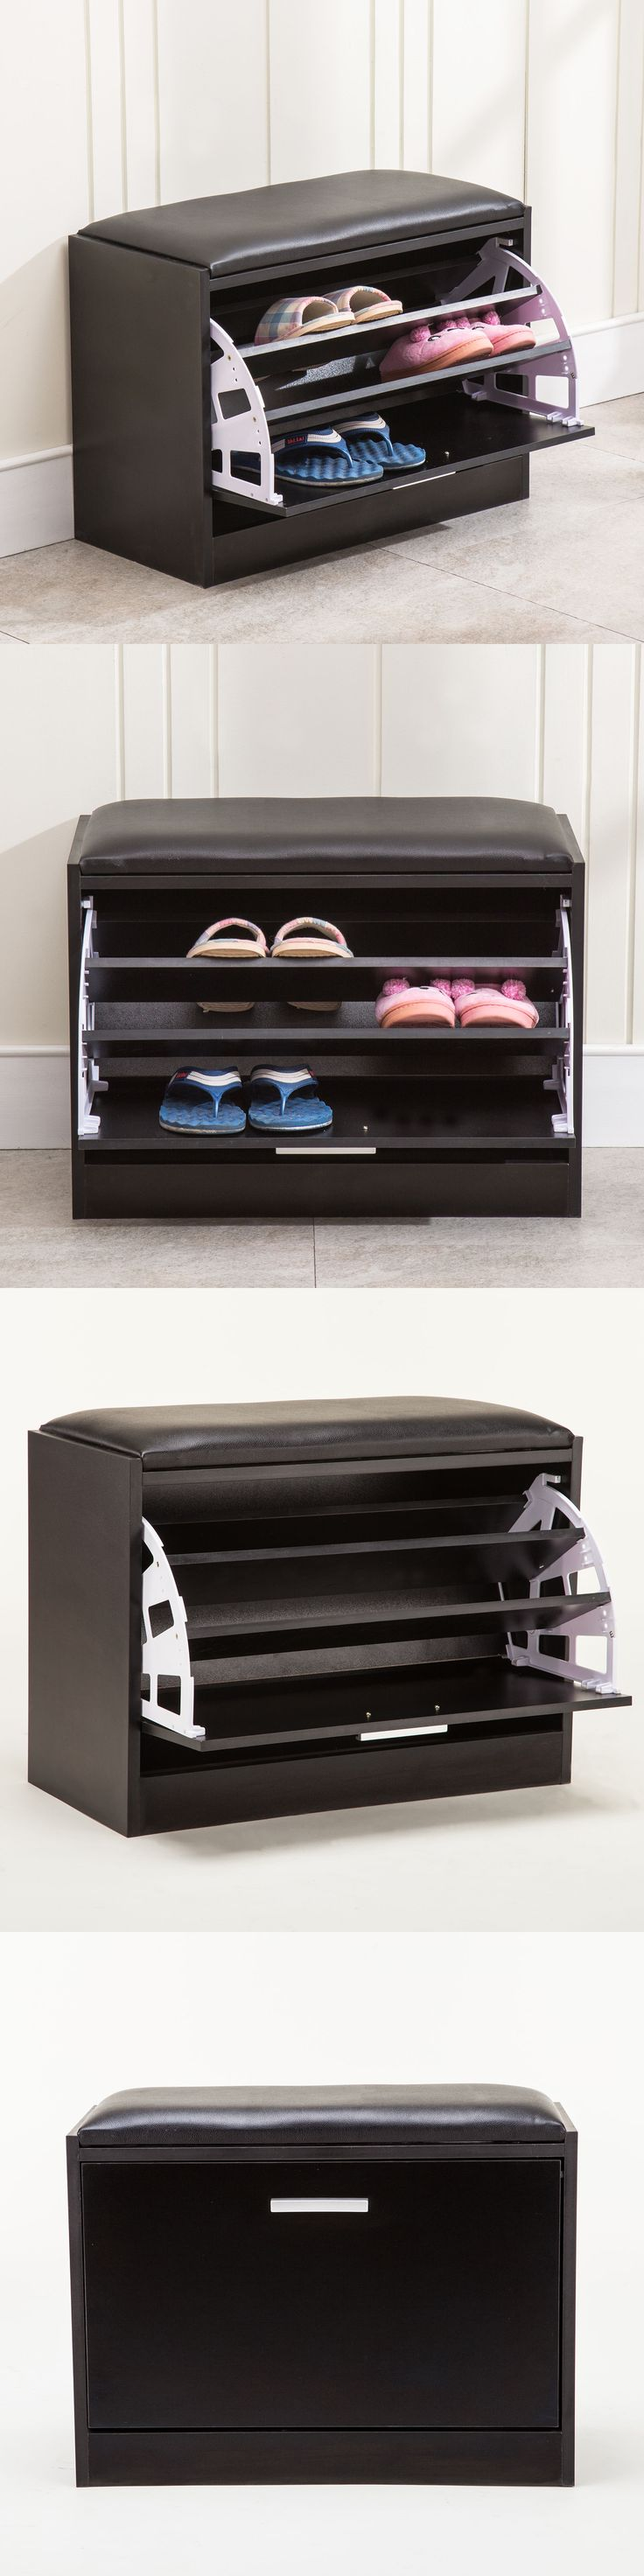 Shoe Organizers 43506: 3 Racks Wood Shoe Ottoman Bench Cabinet Closet Shelf Organizer Storage Stand -> BUY IT NOW ONLY: $39.9 on eBay!